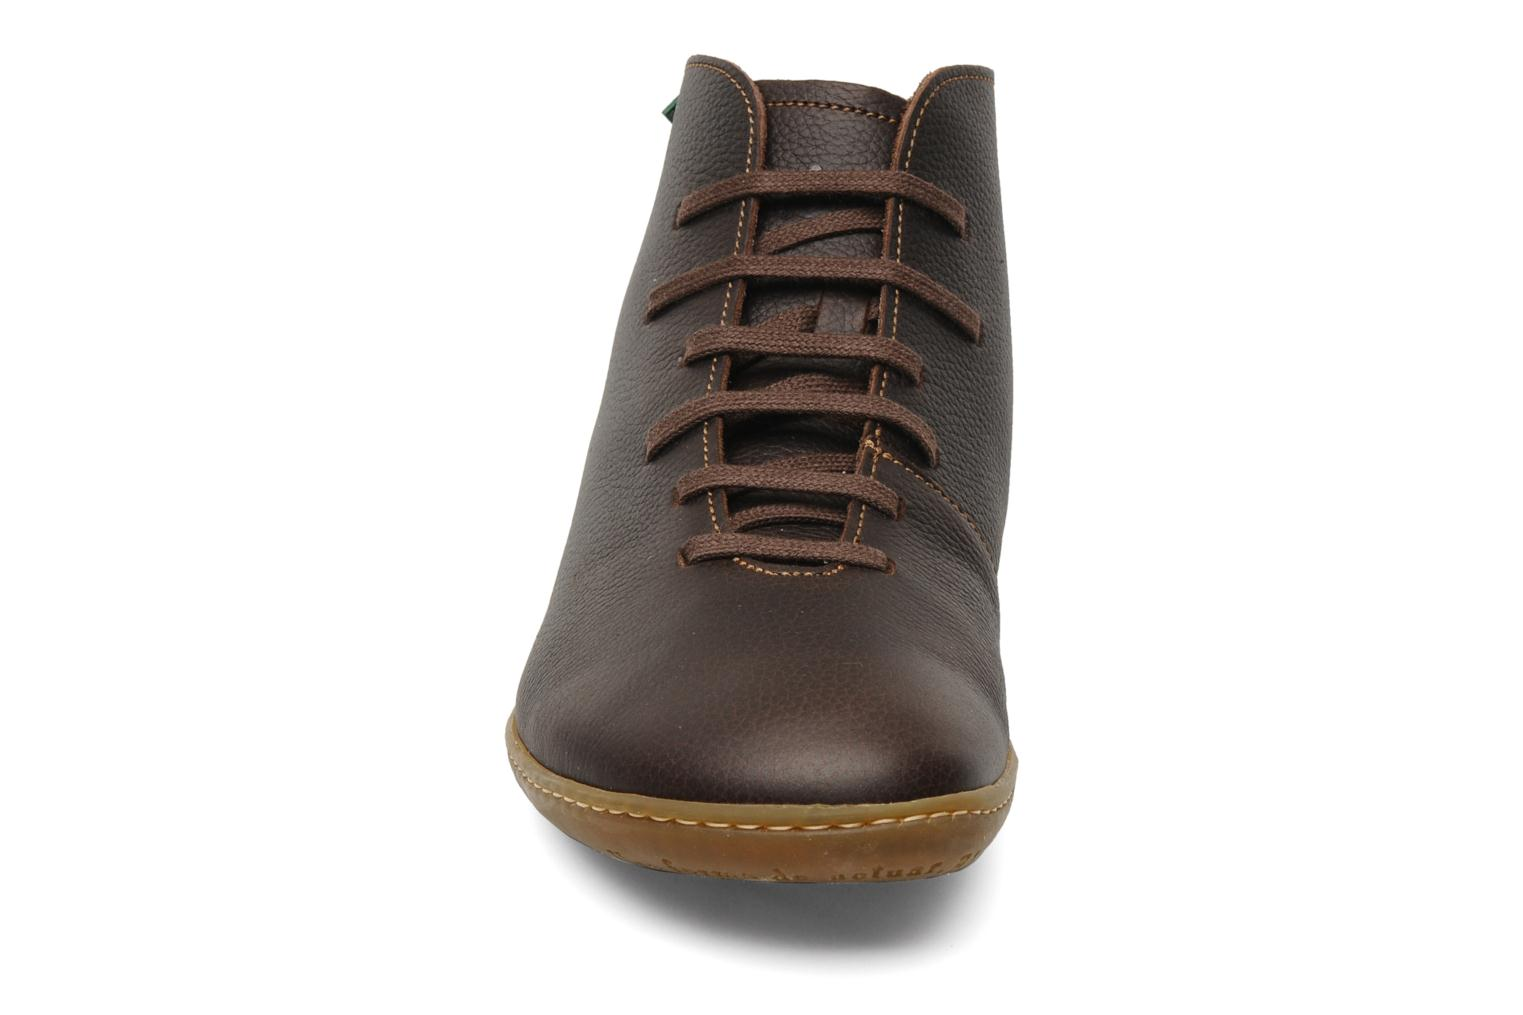 Viajero N267 M Brown soft grain